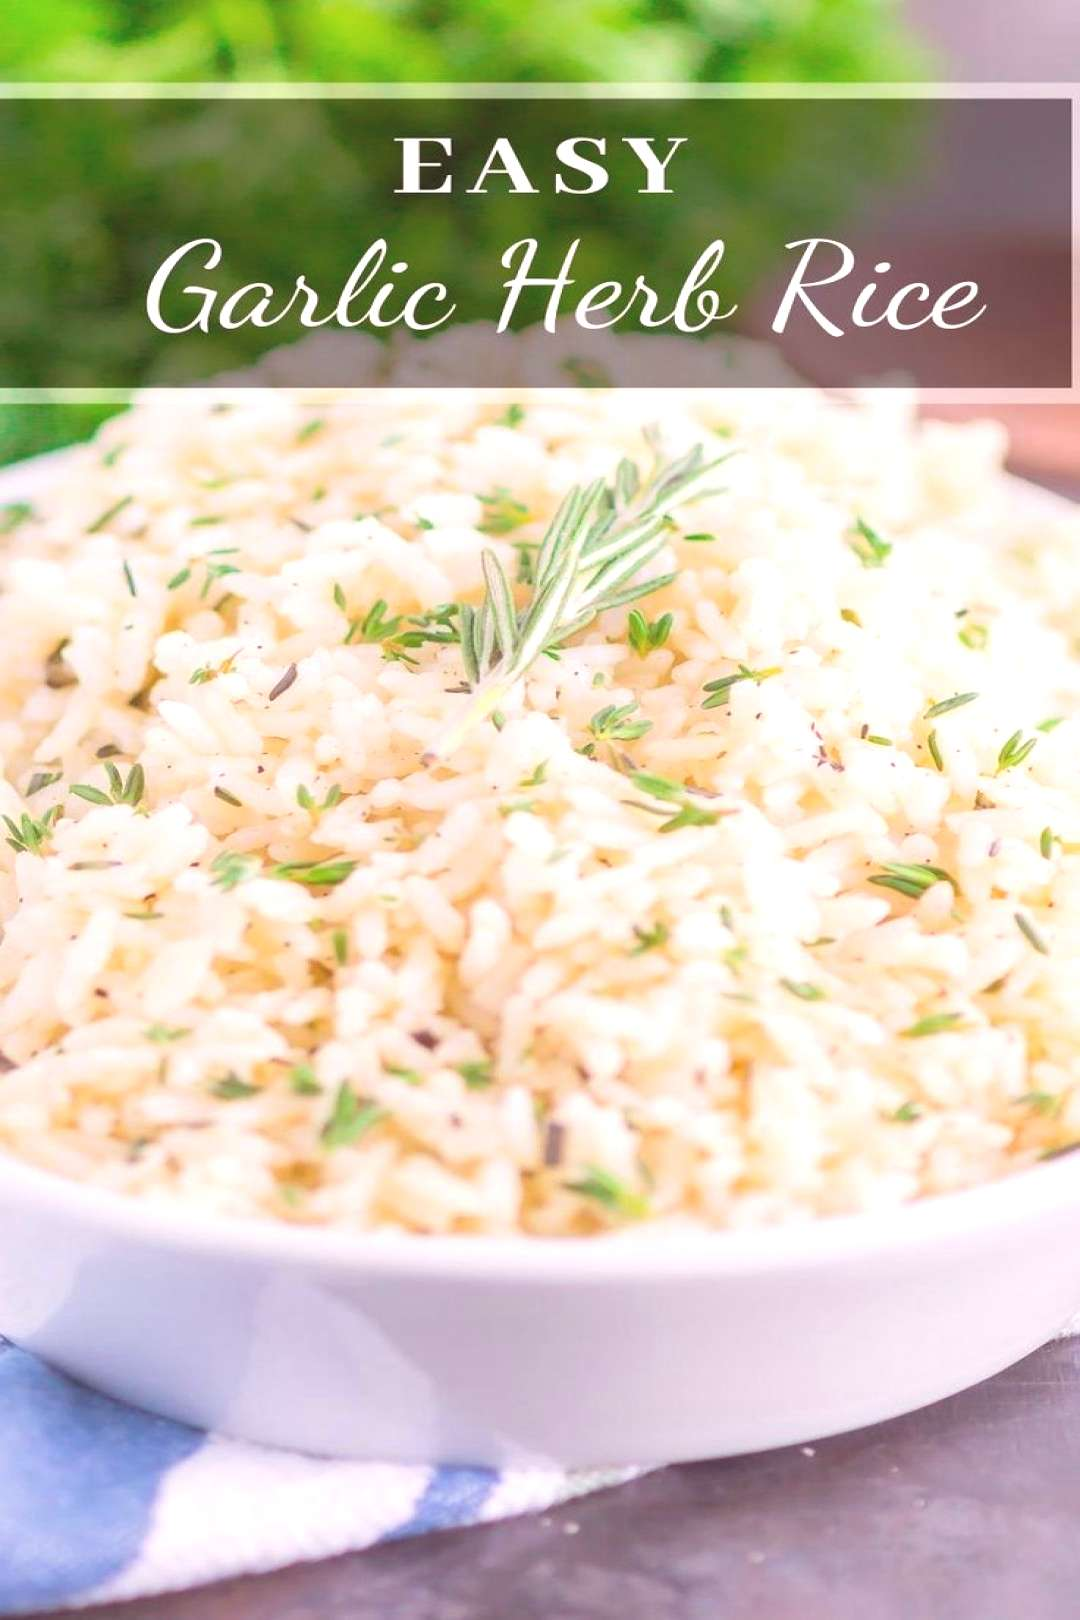 Garlic Herb Rice is a simple side dish that's ready in just 20 minutes. A mixture of fresh herbs, g